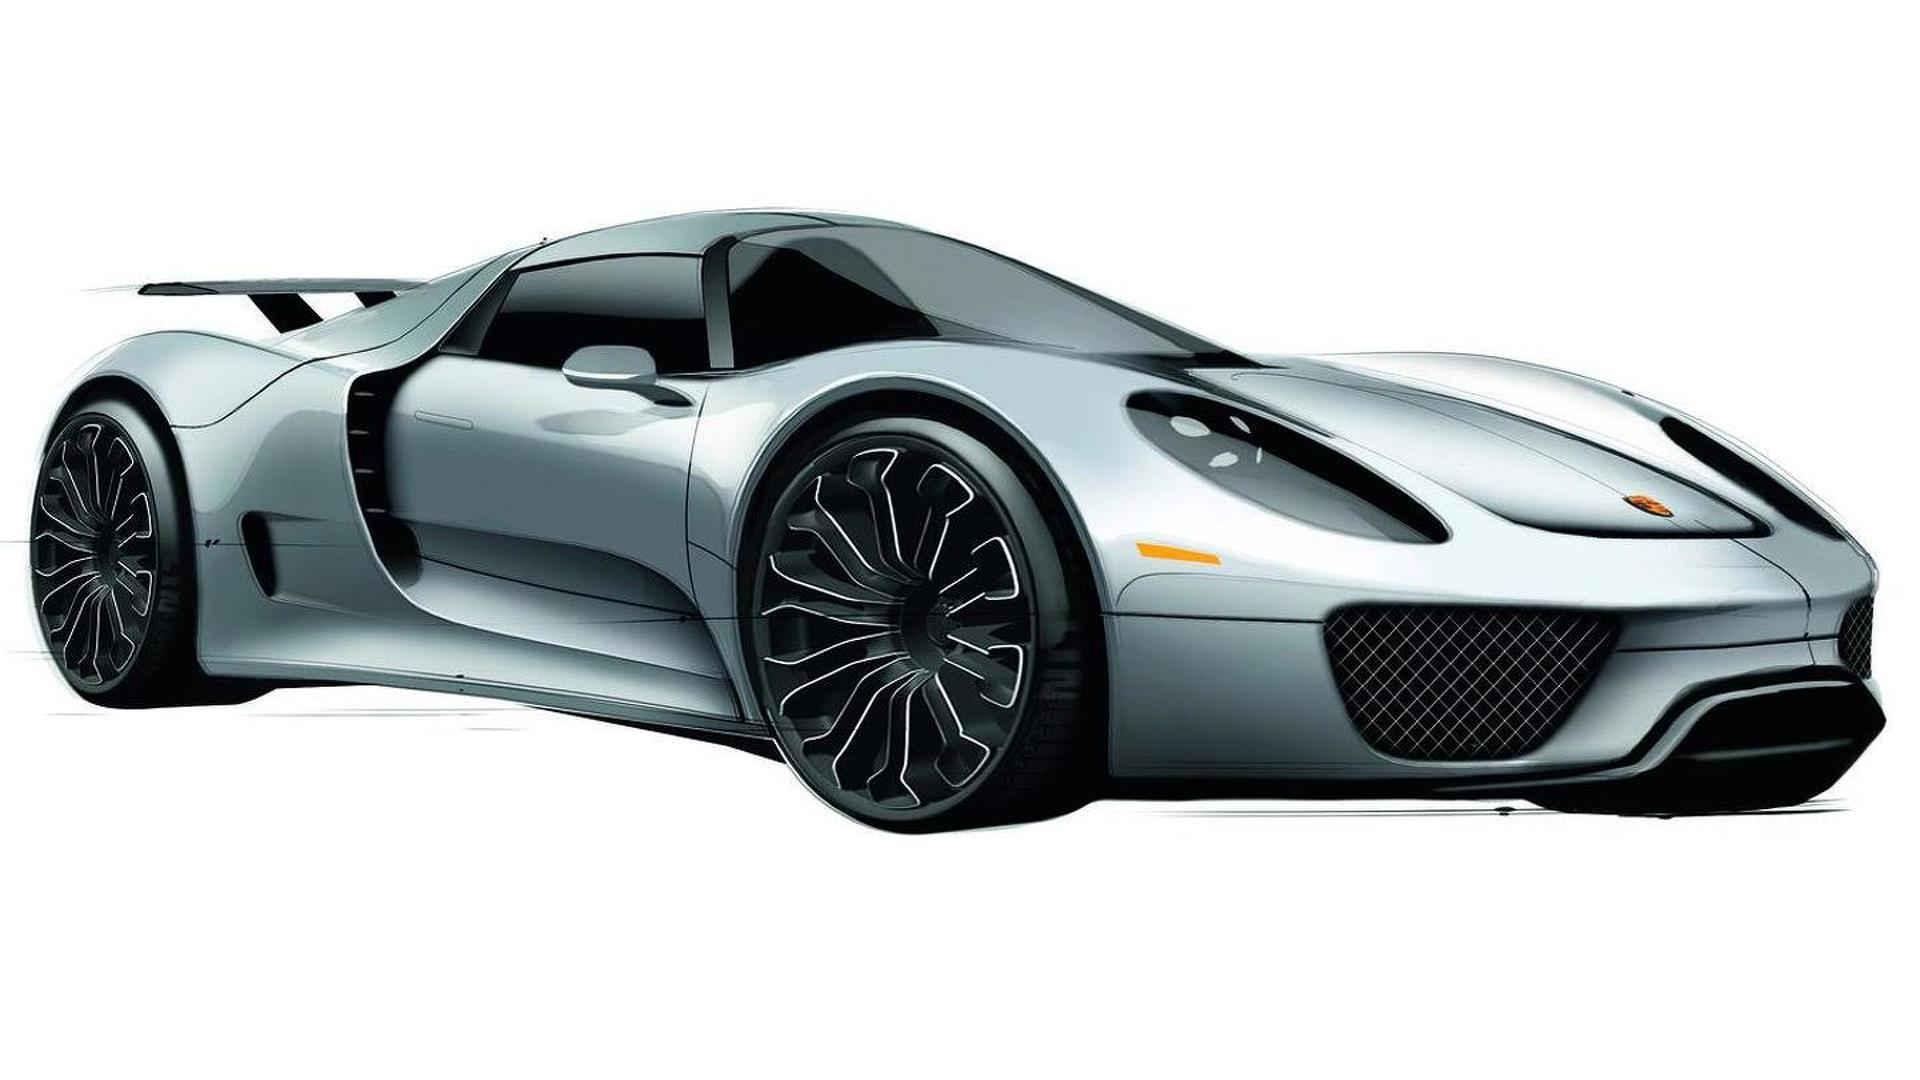 Porsche 988 With 600 Bhp Quad Turbo Flat Eight Engine In The Works